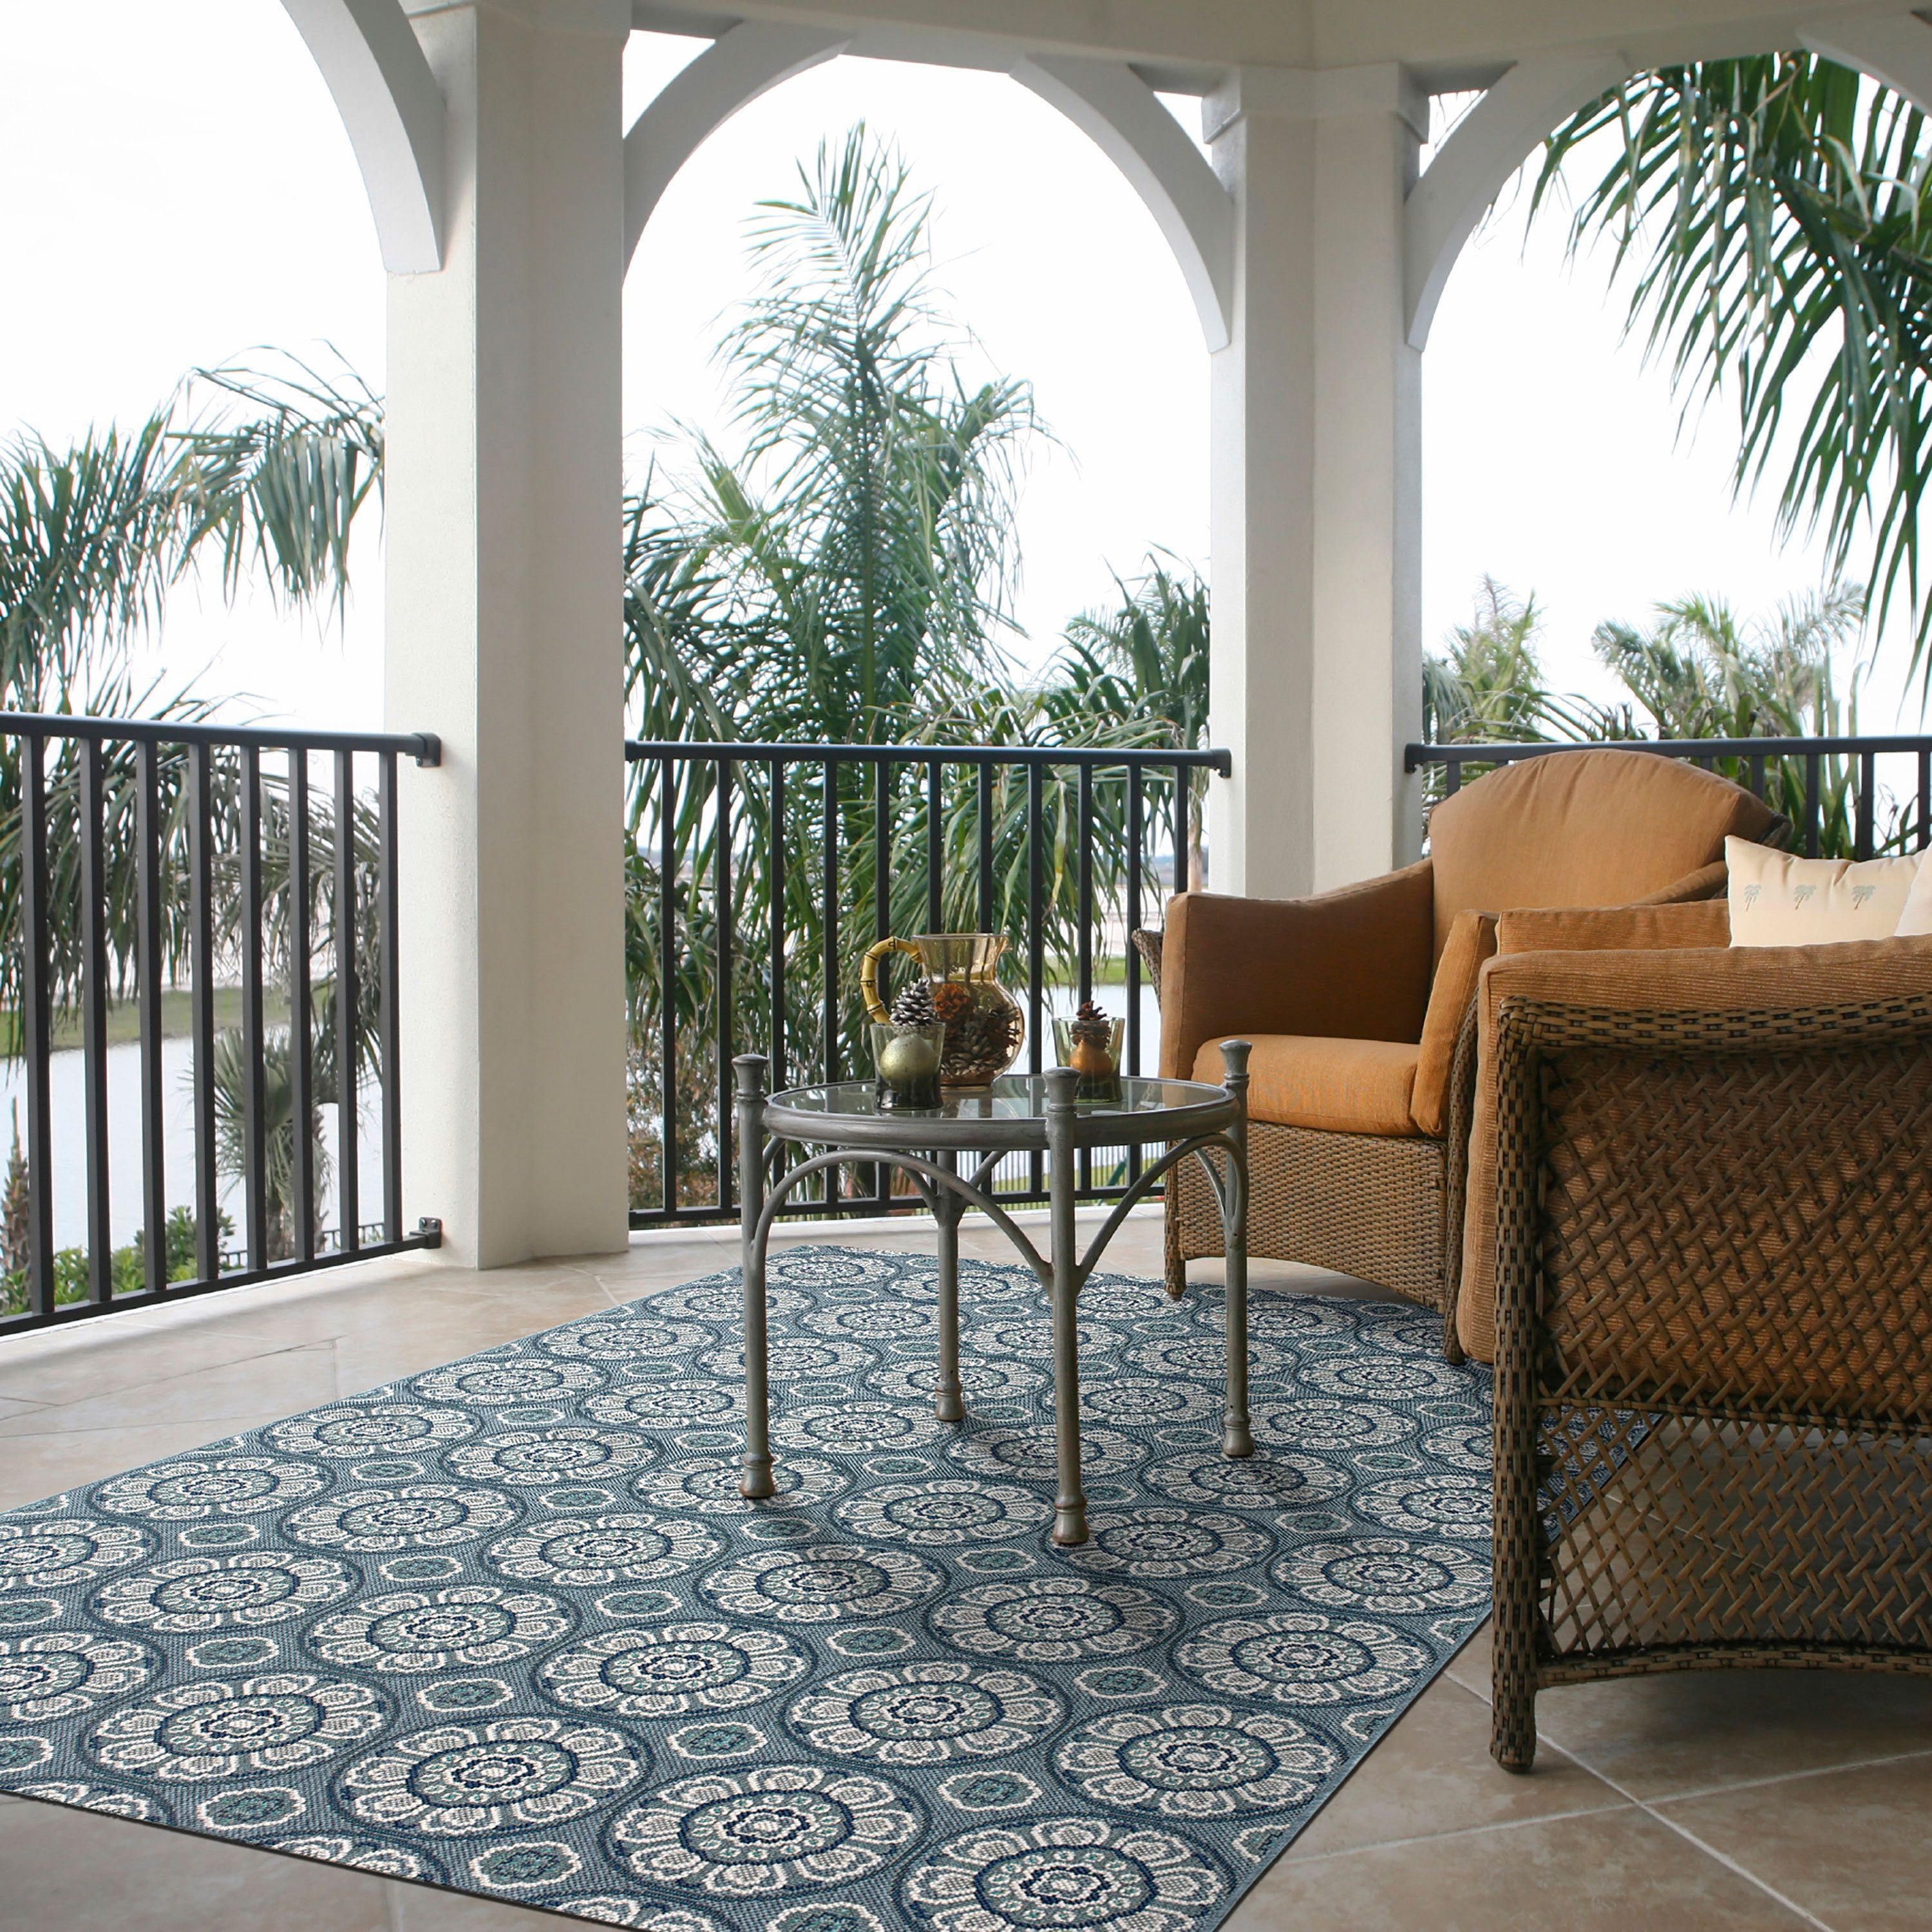 Signature Home Creighton Blue Polypropylene Area Rug 7 10x10 7 10 X 10 Blue 7 10 X 10 Outdoor Rugs Indoor Outdoor Area Rugs Outdoor Area Rugs